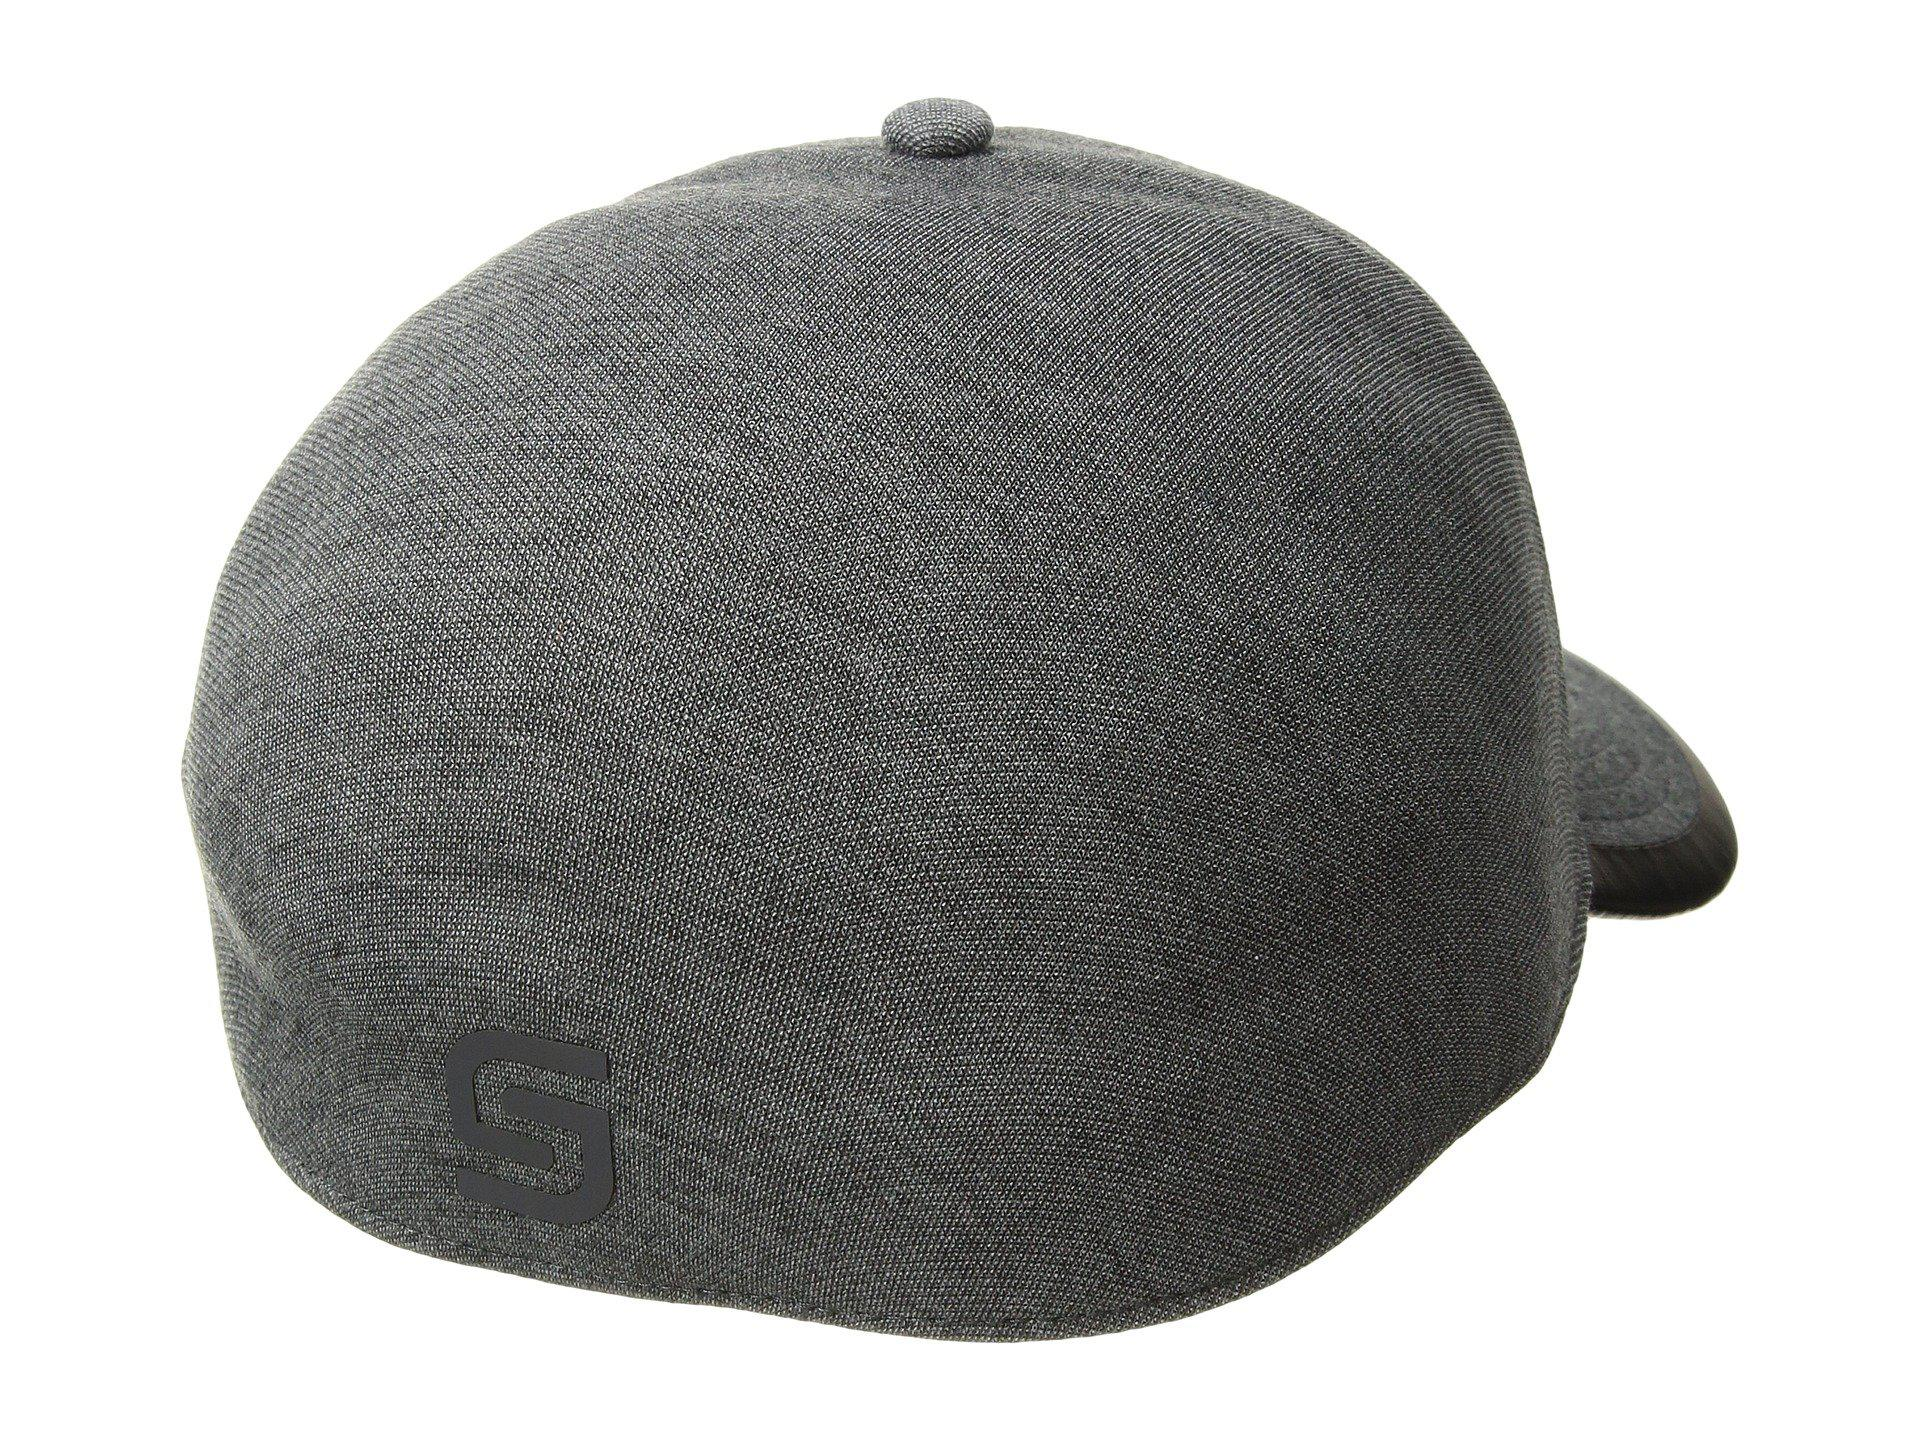 016a1e1aeb2 ... where to buy lyst under armour elevated tb tour cap in black for men  7938c 79a24